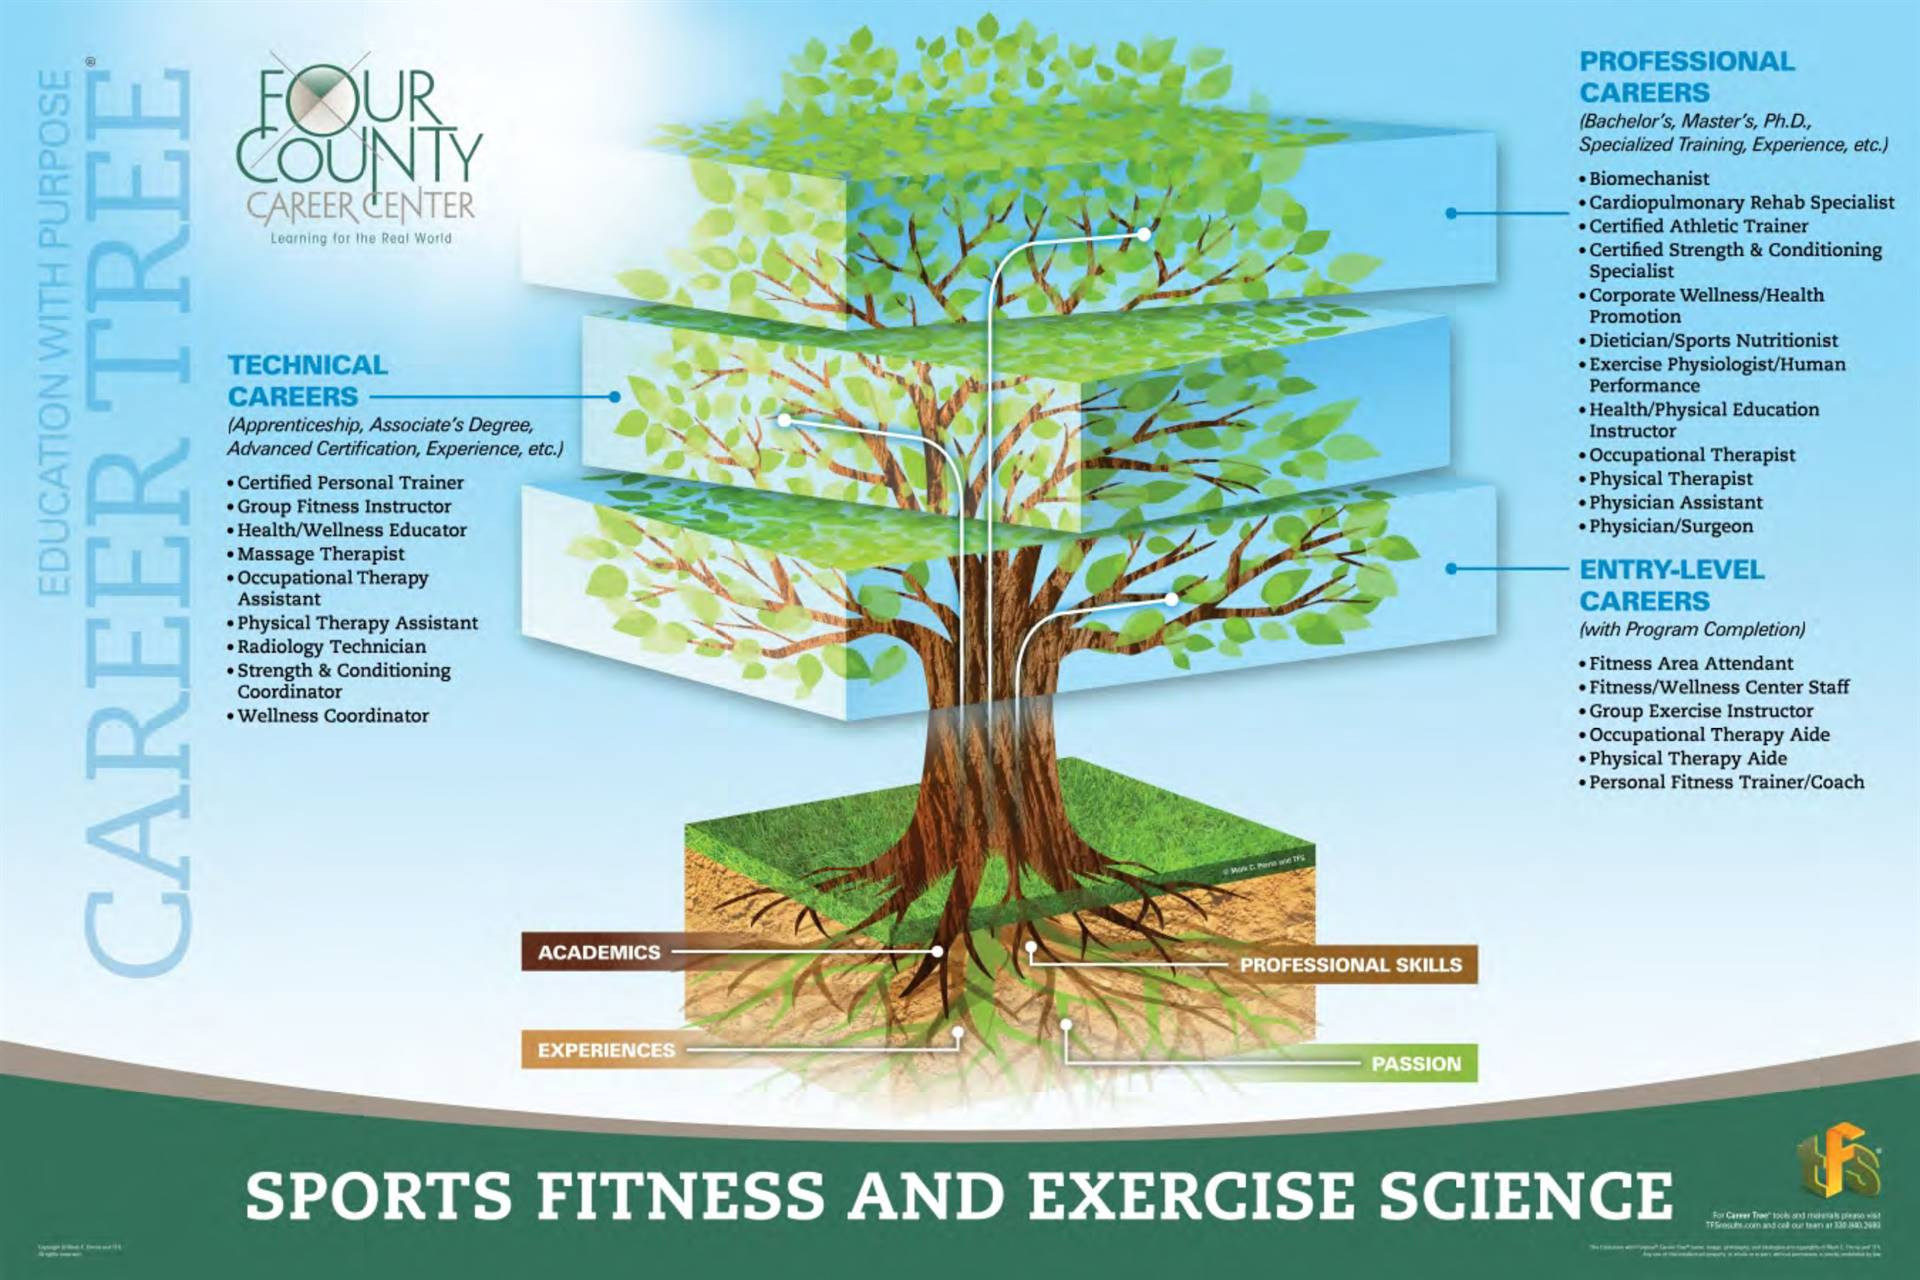 Exercise Science & Sports Medicine